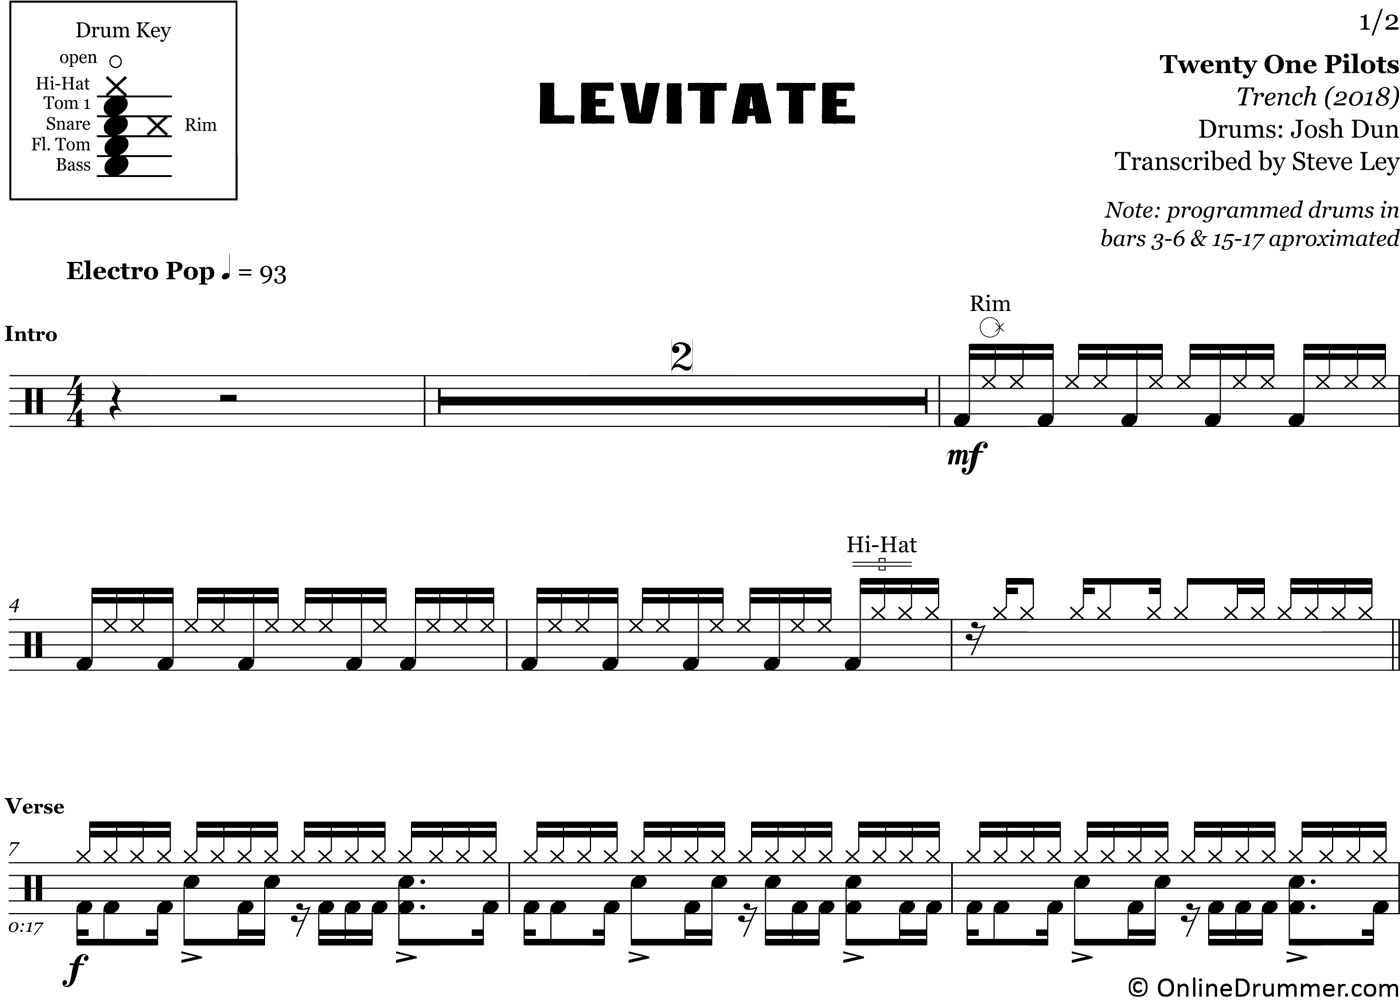 image regarding Free Printable Drum Sheet Music named Levitate - 20 A single Pilots - Drum Sheet New music Drum Sheet